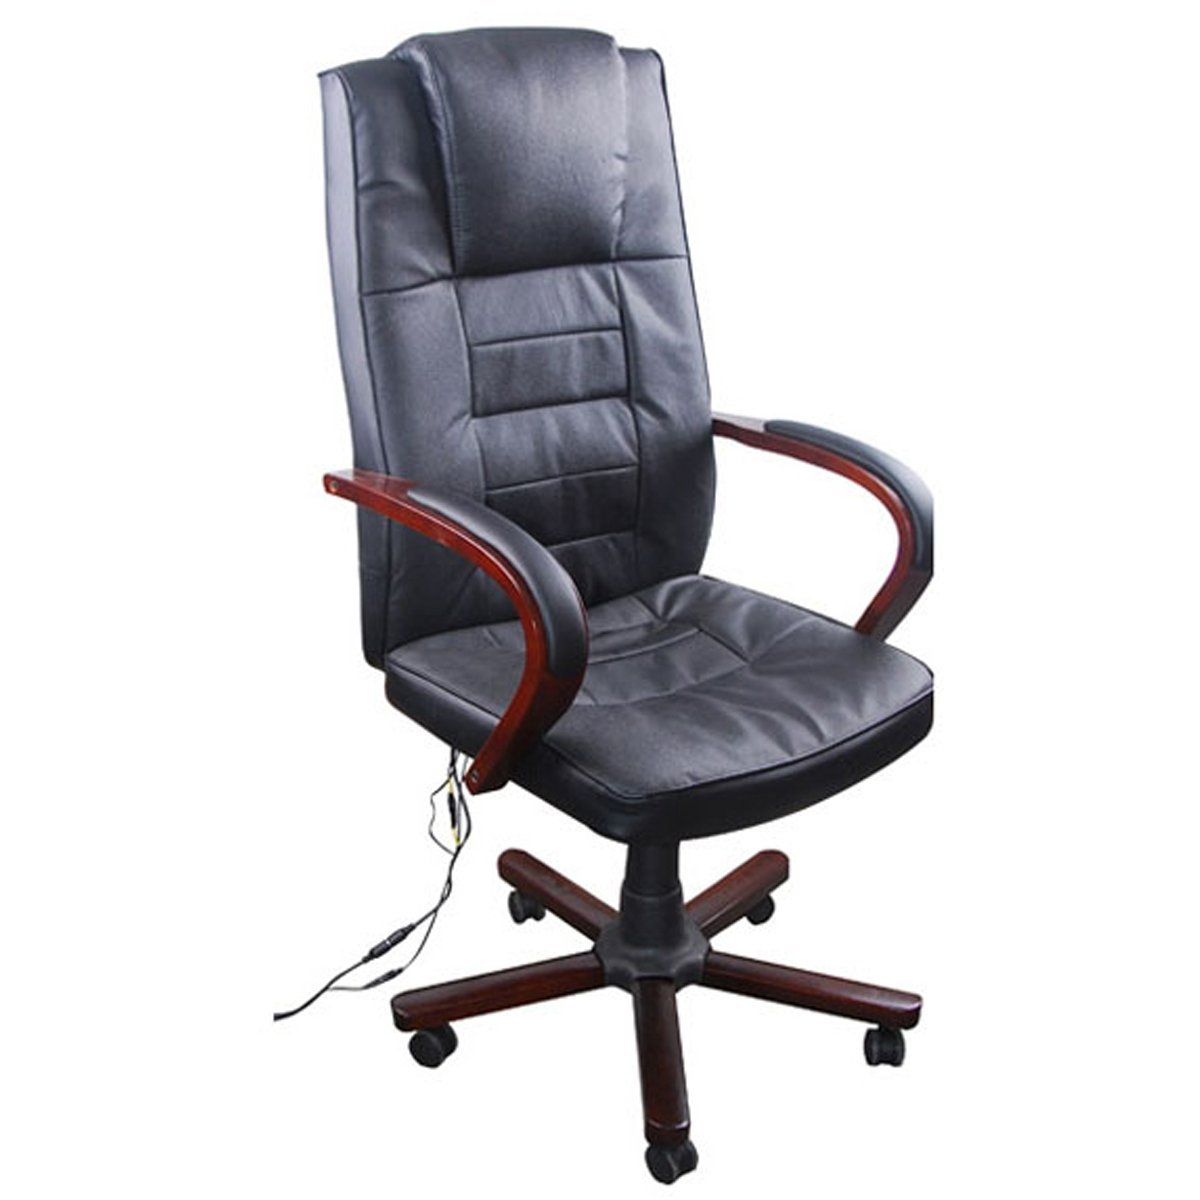 cheap leather office massage chair find leather office massage